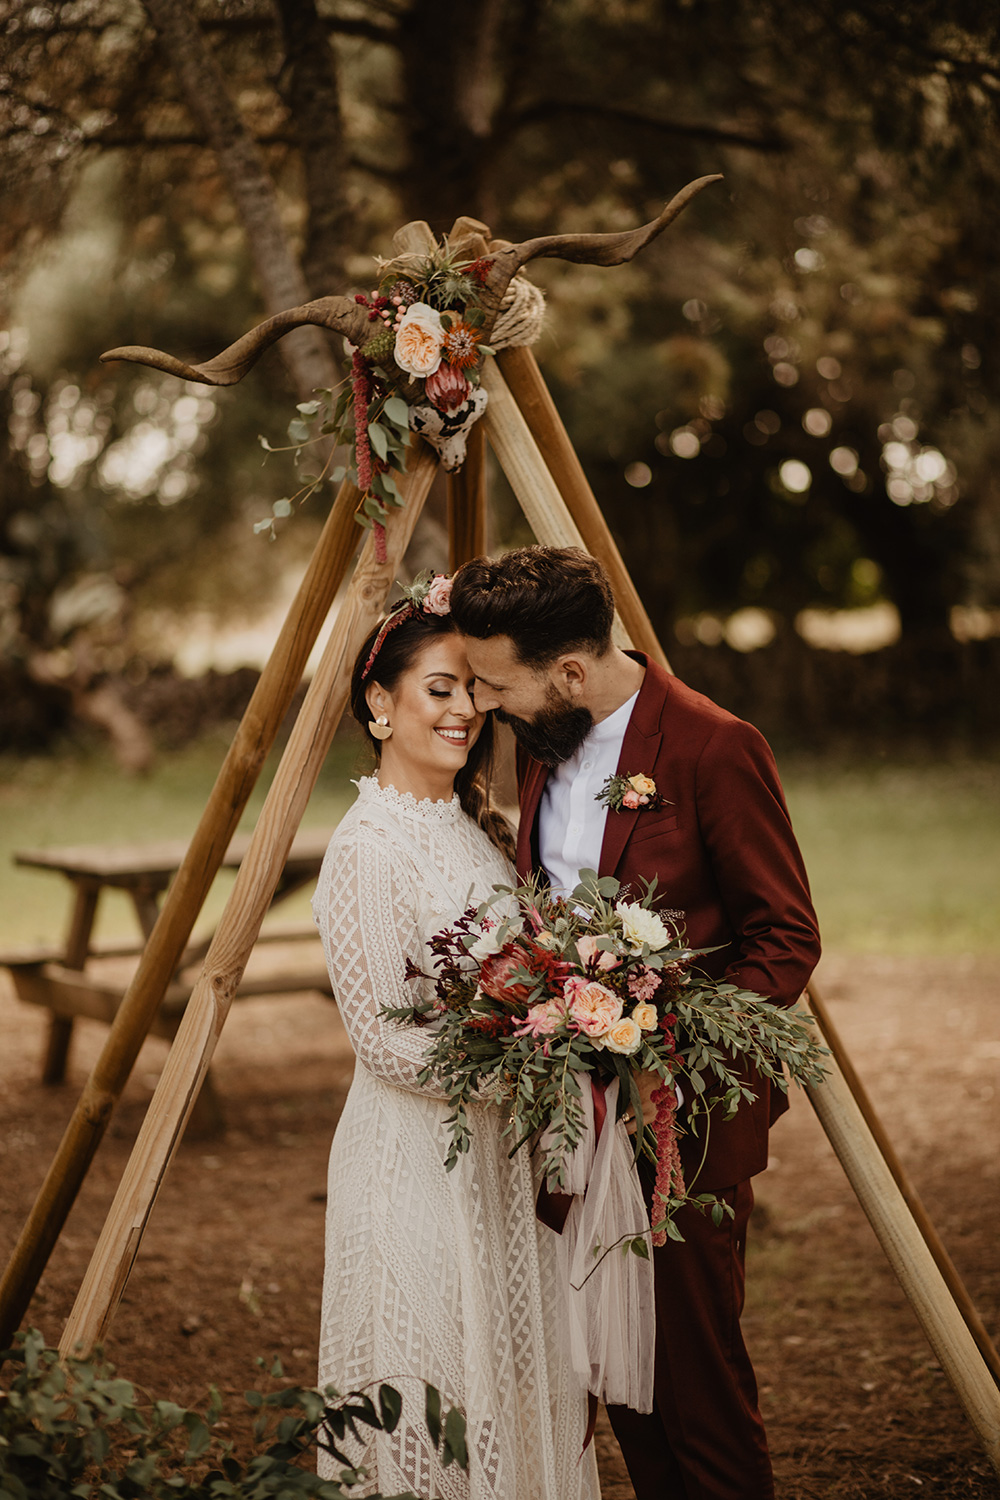 Vis&Co The Spectacular Now - Wedding Photo Online Expo